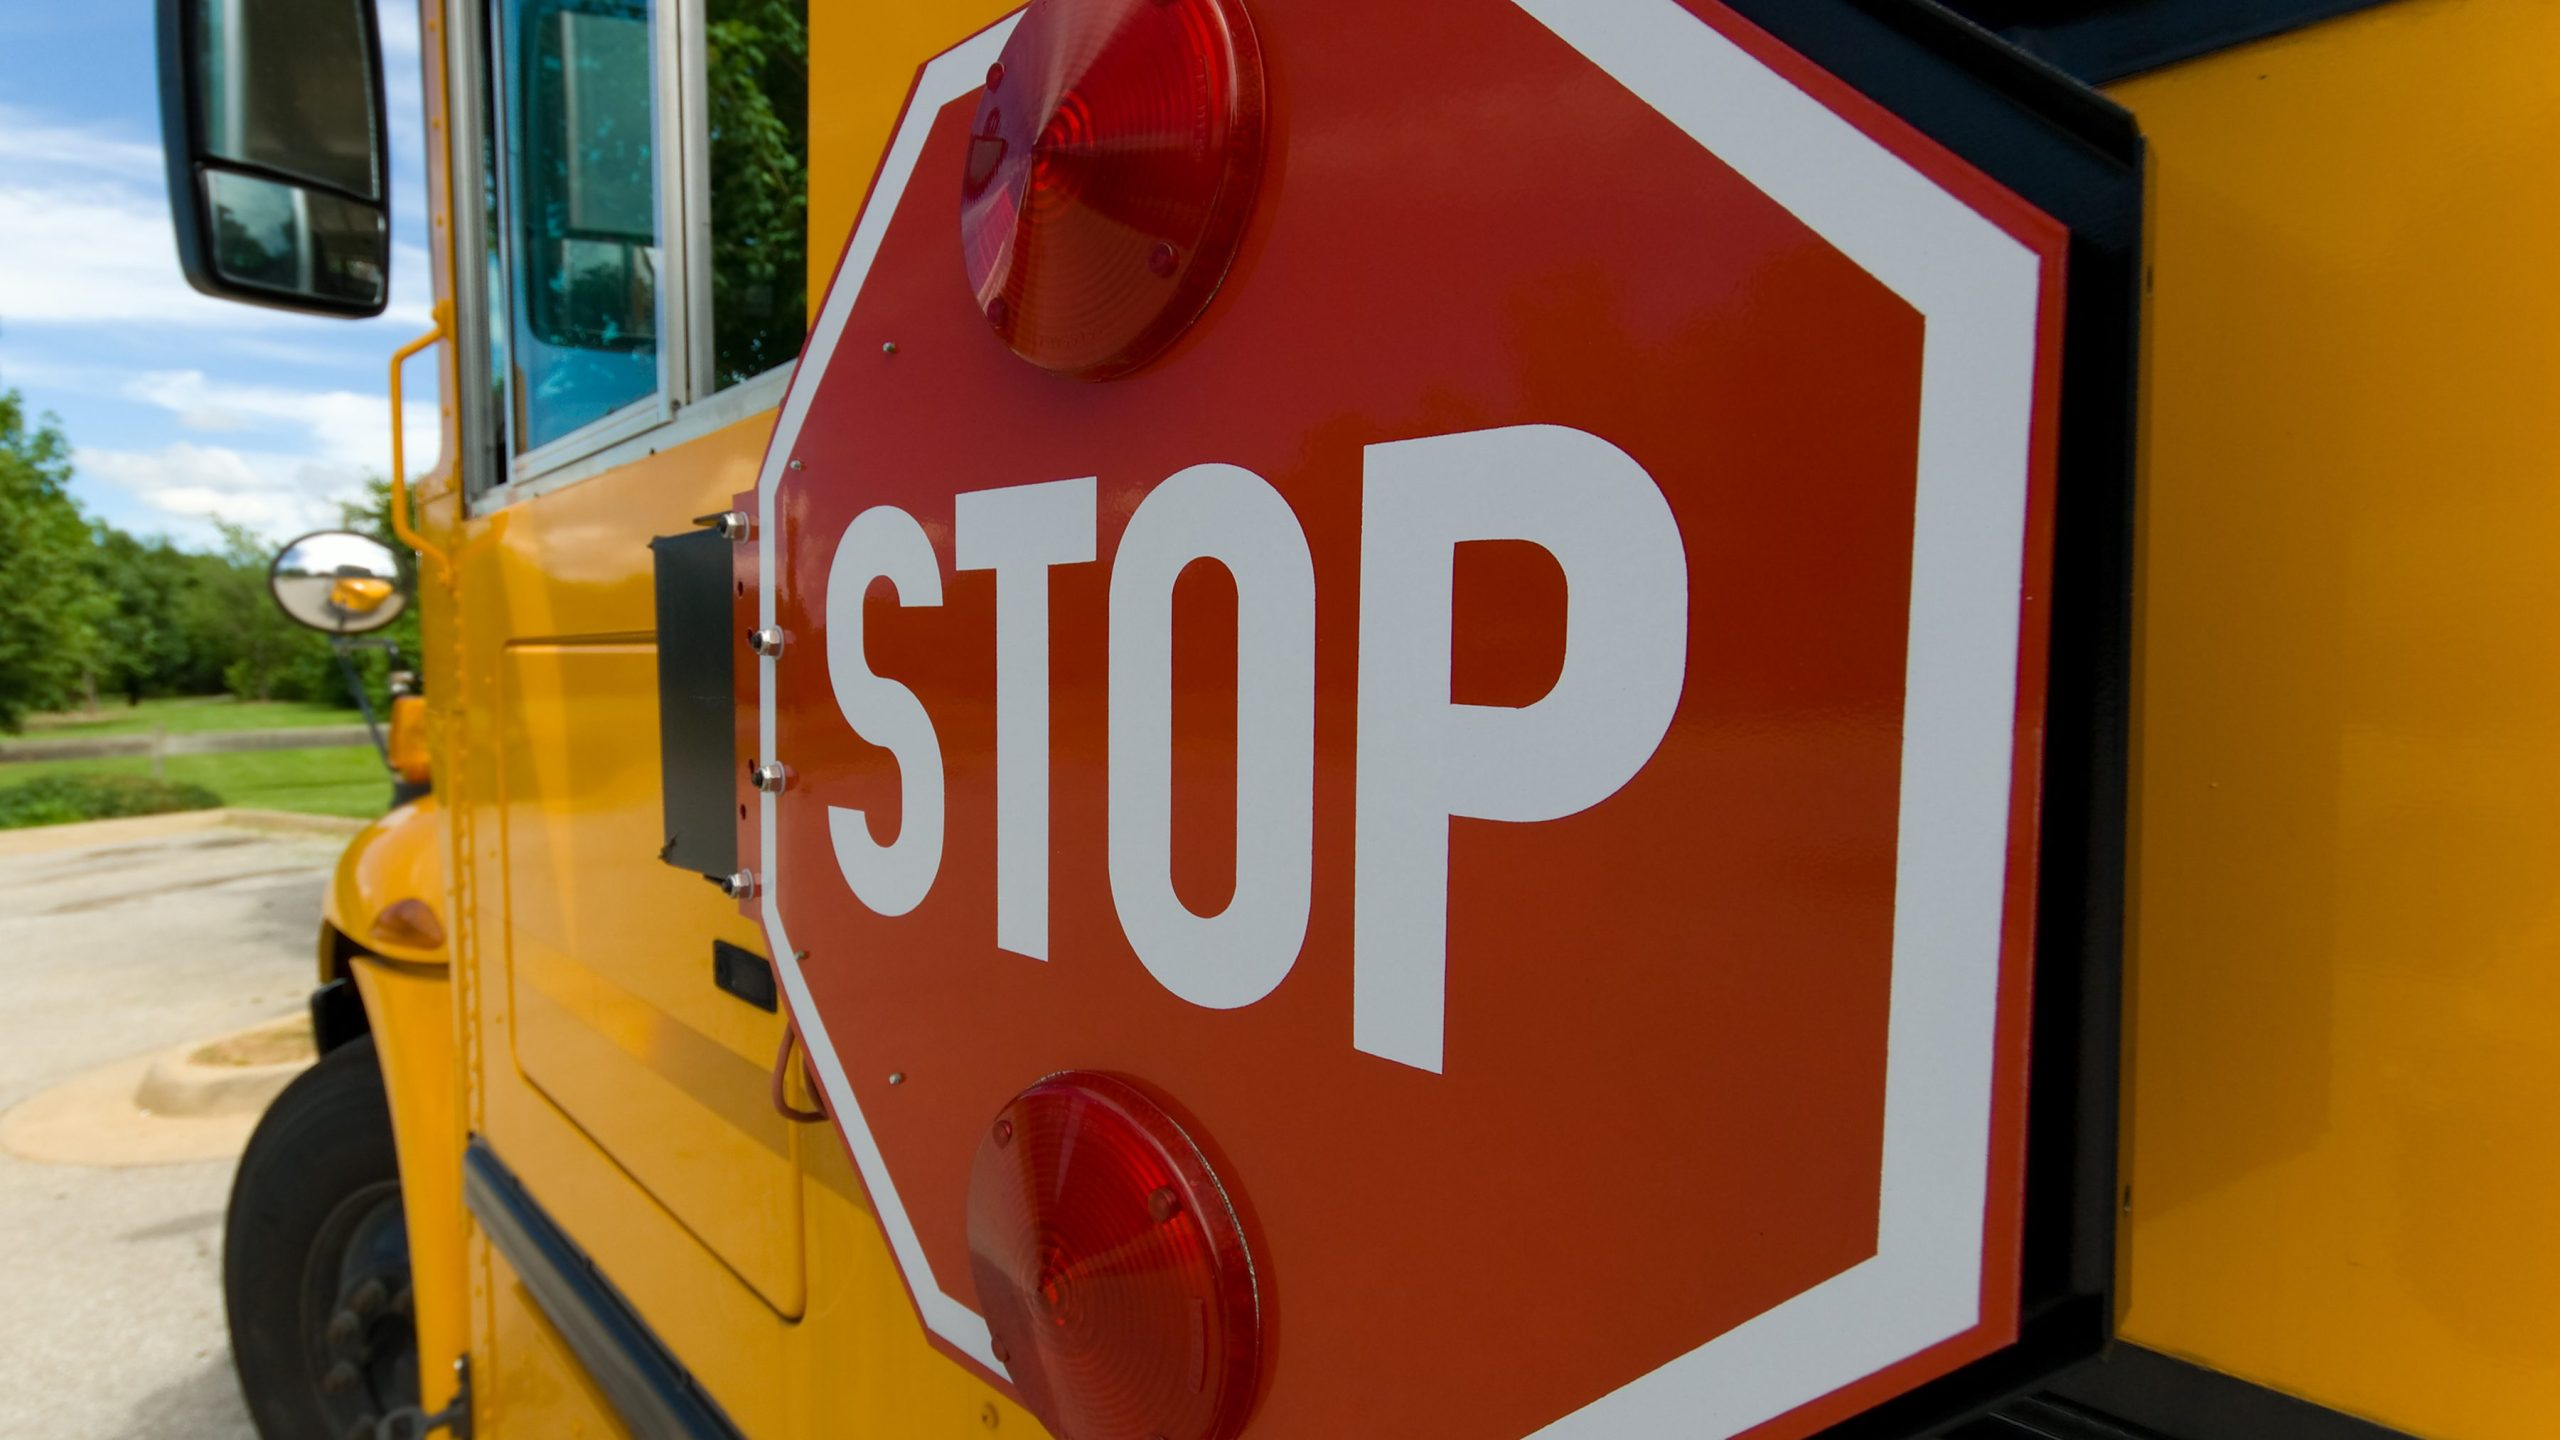 stop sign on yellow school bus making a turn against blue sky